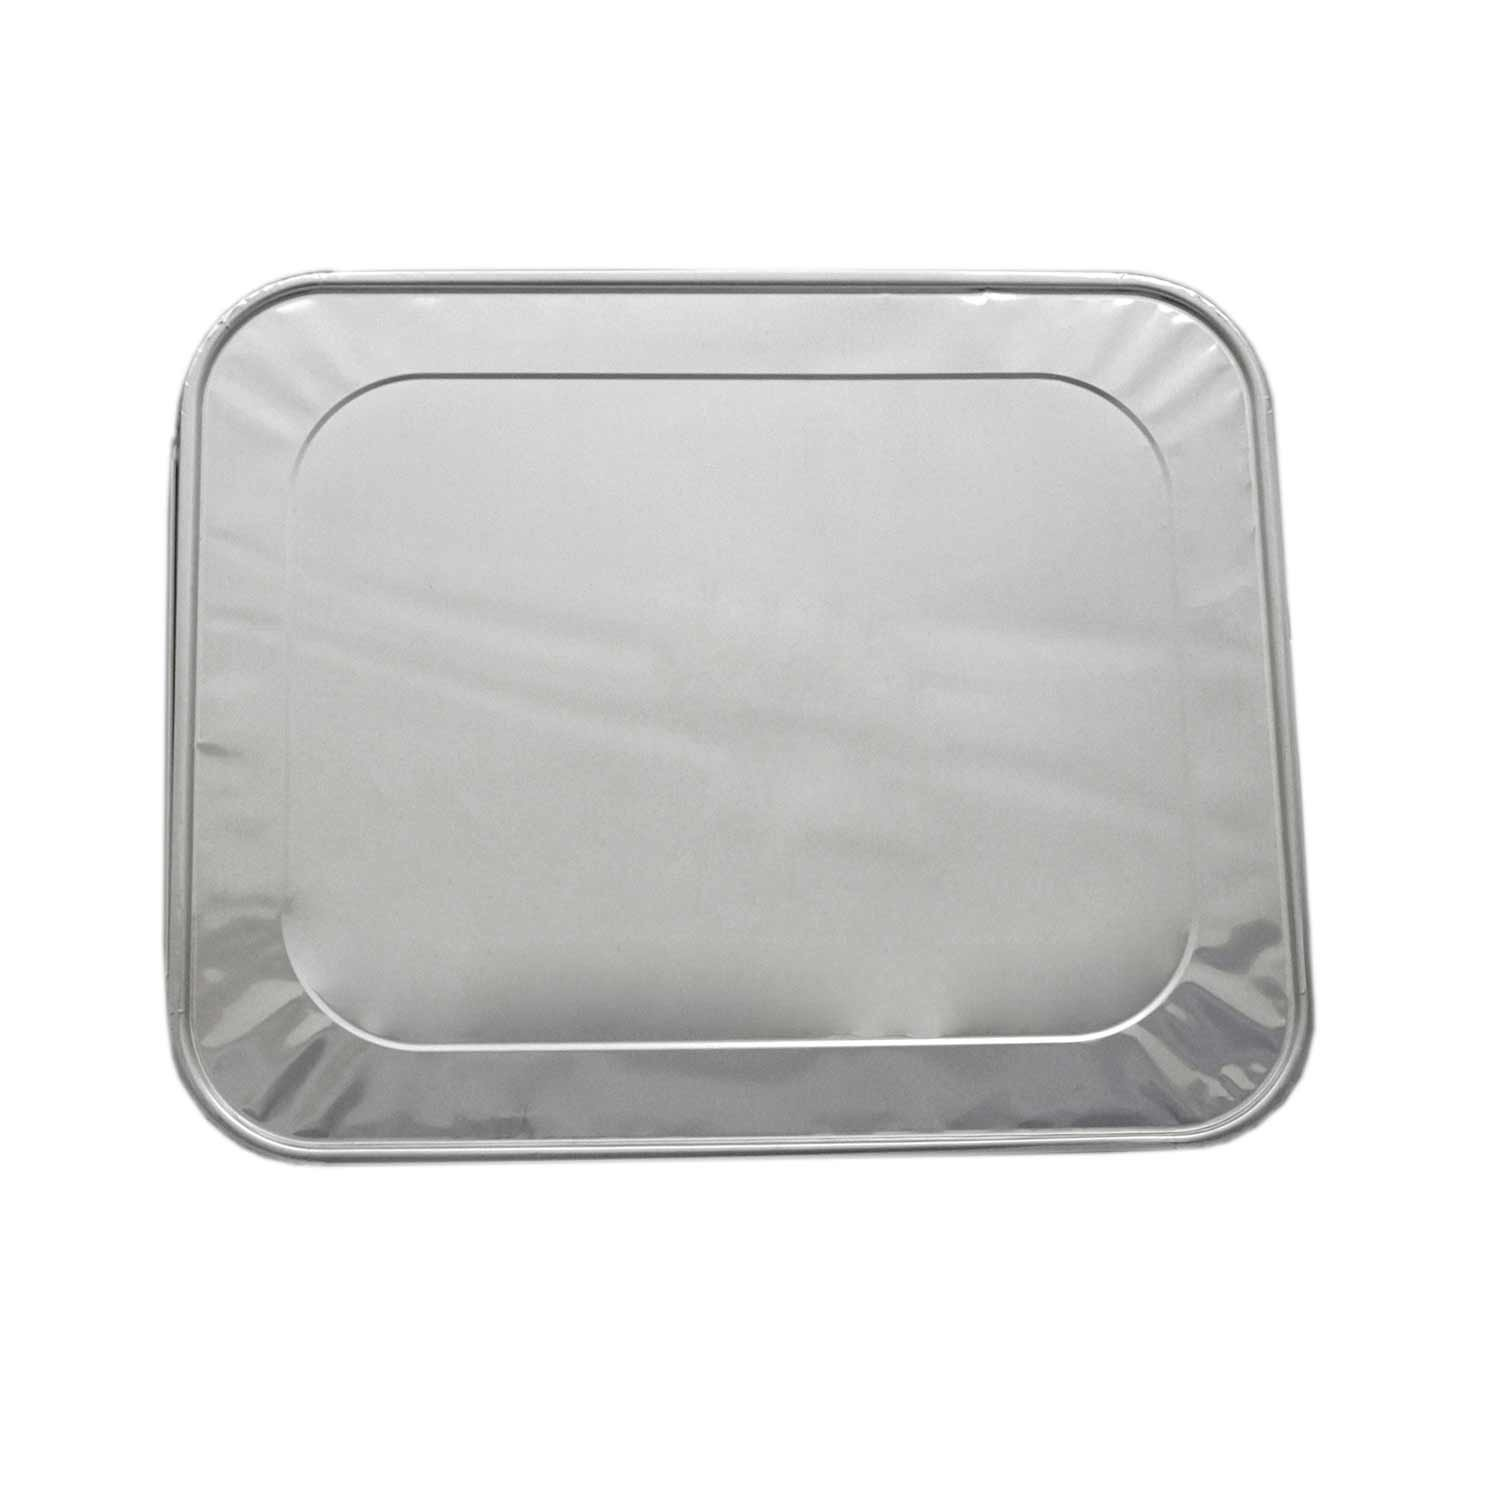 Party Essentials F1050 Half Size Aluminum Foil Lid for Steam Table Pan (Case of 100) by Party Essentials